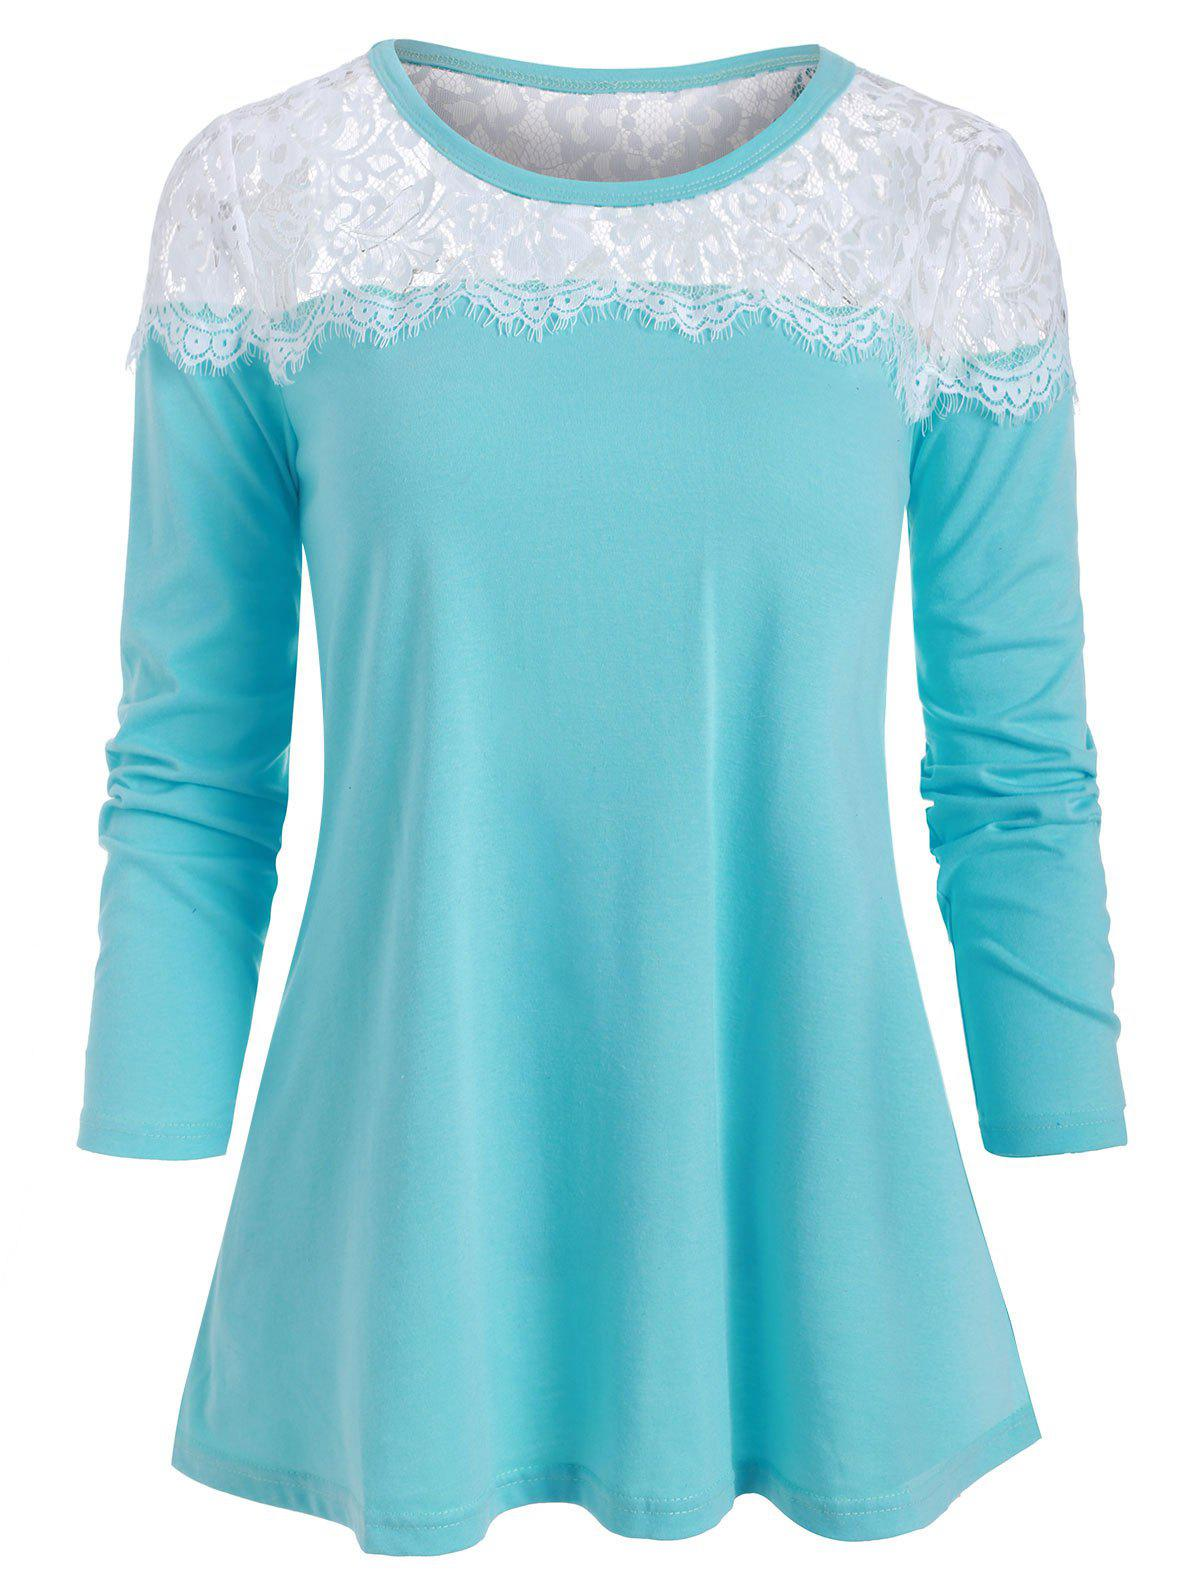 Lace Panel Long Sleeves Casual Tee - DEEP SKY BLUE XL